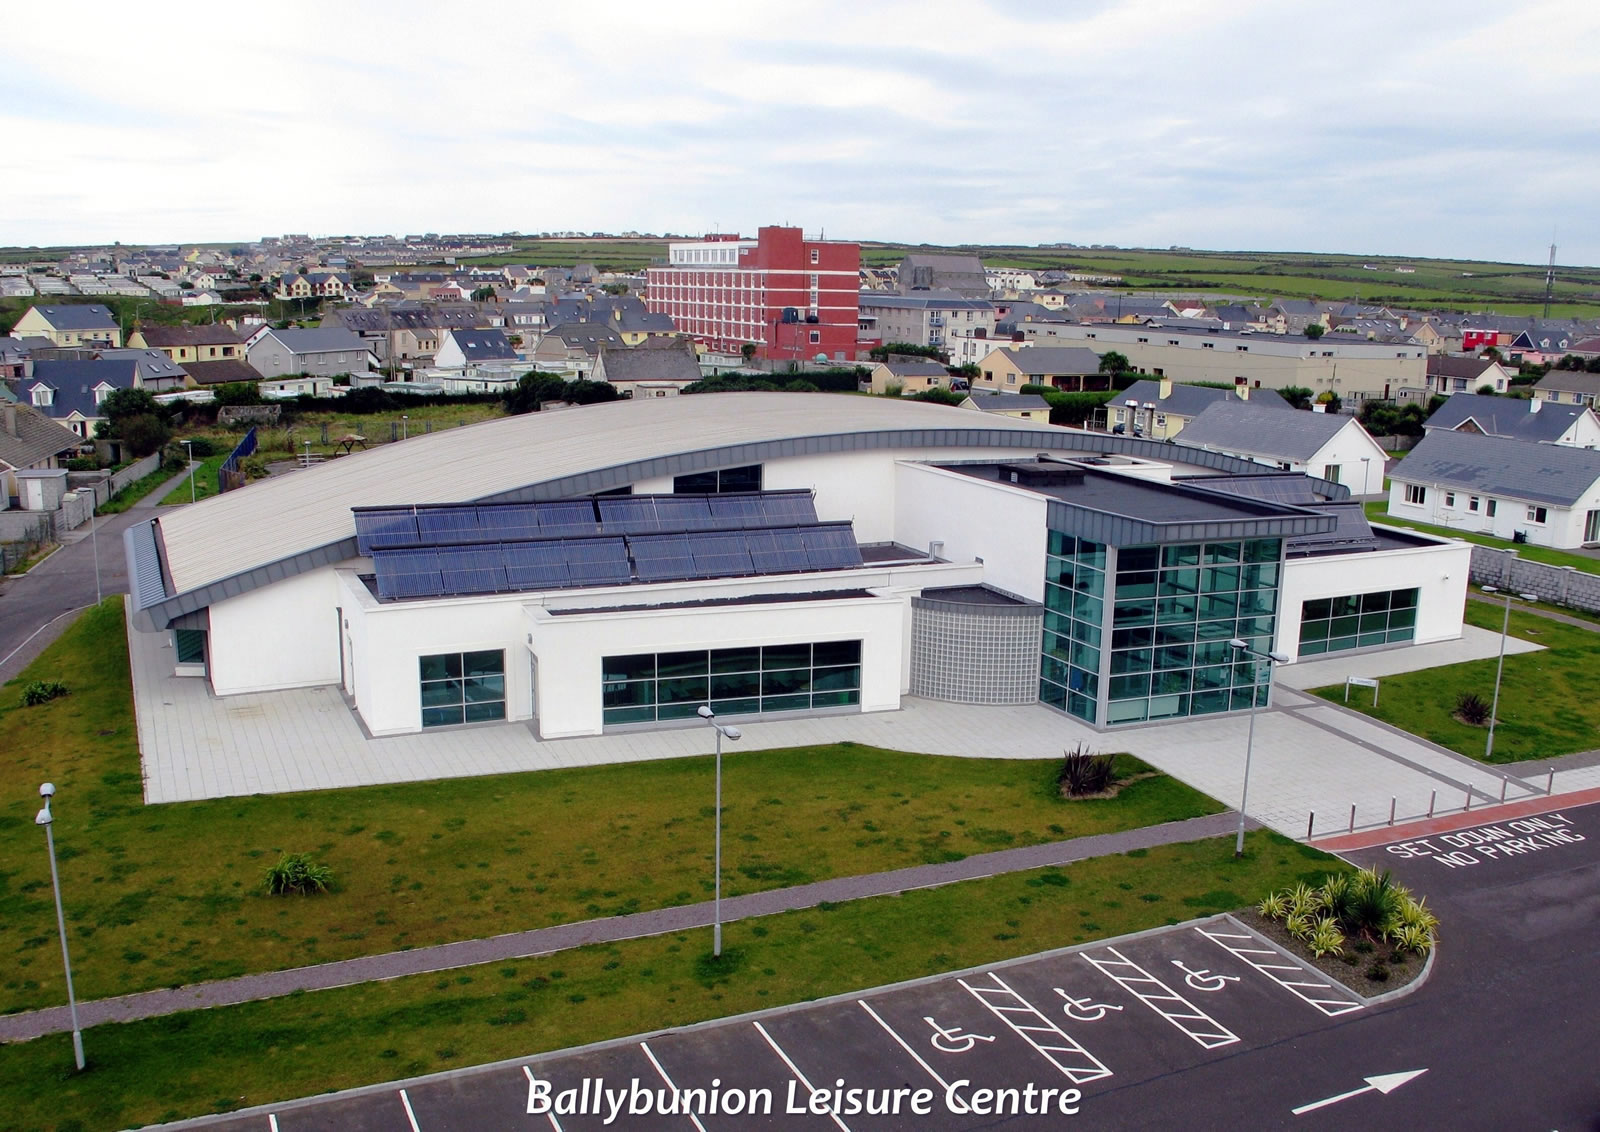 Ballybunnion Leisure Centre